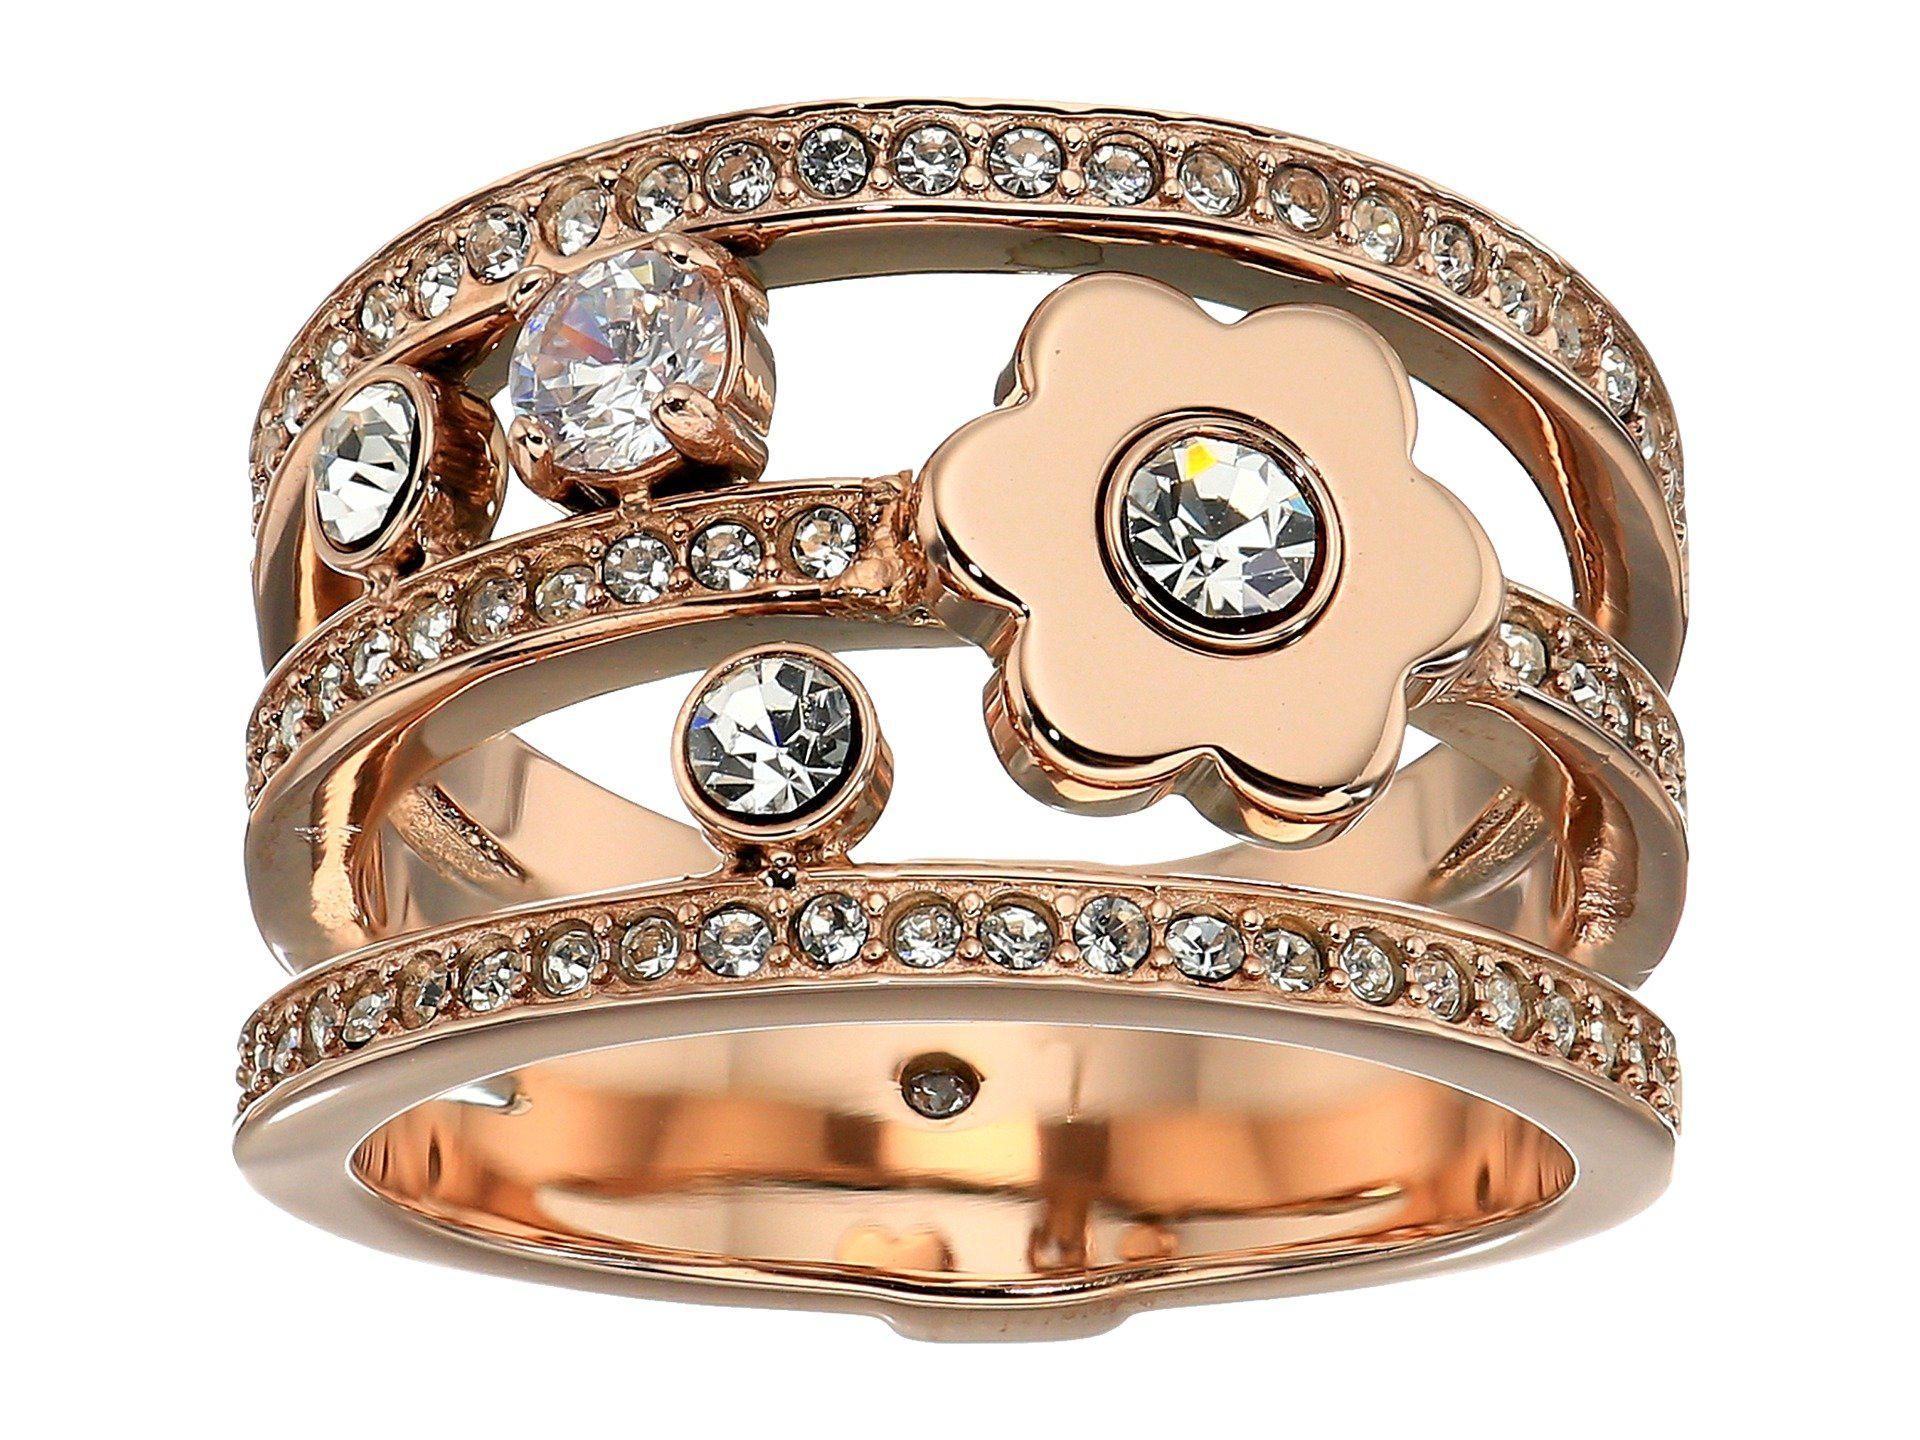 Michael Kors In Full Bloom Floral and Crystal Accent Stacked Ring (Gold) Ring 3pspcFh